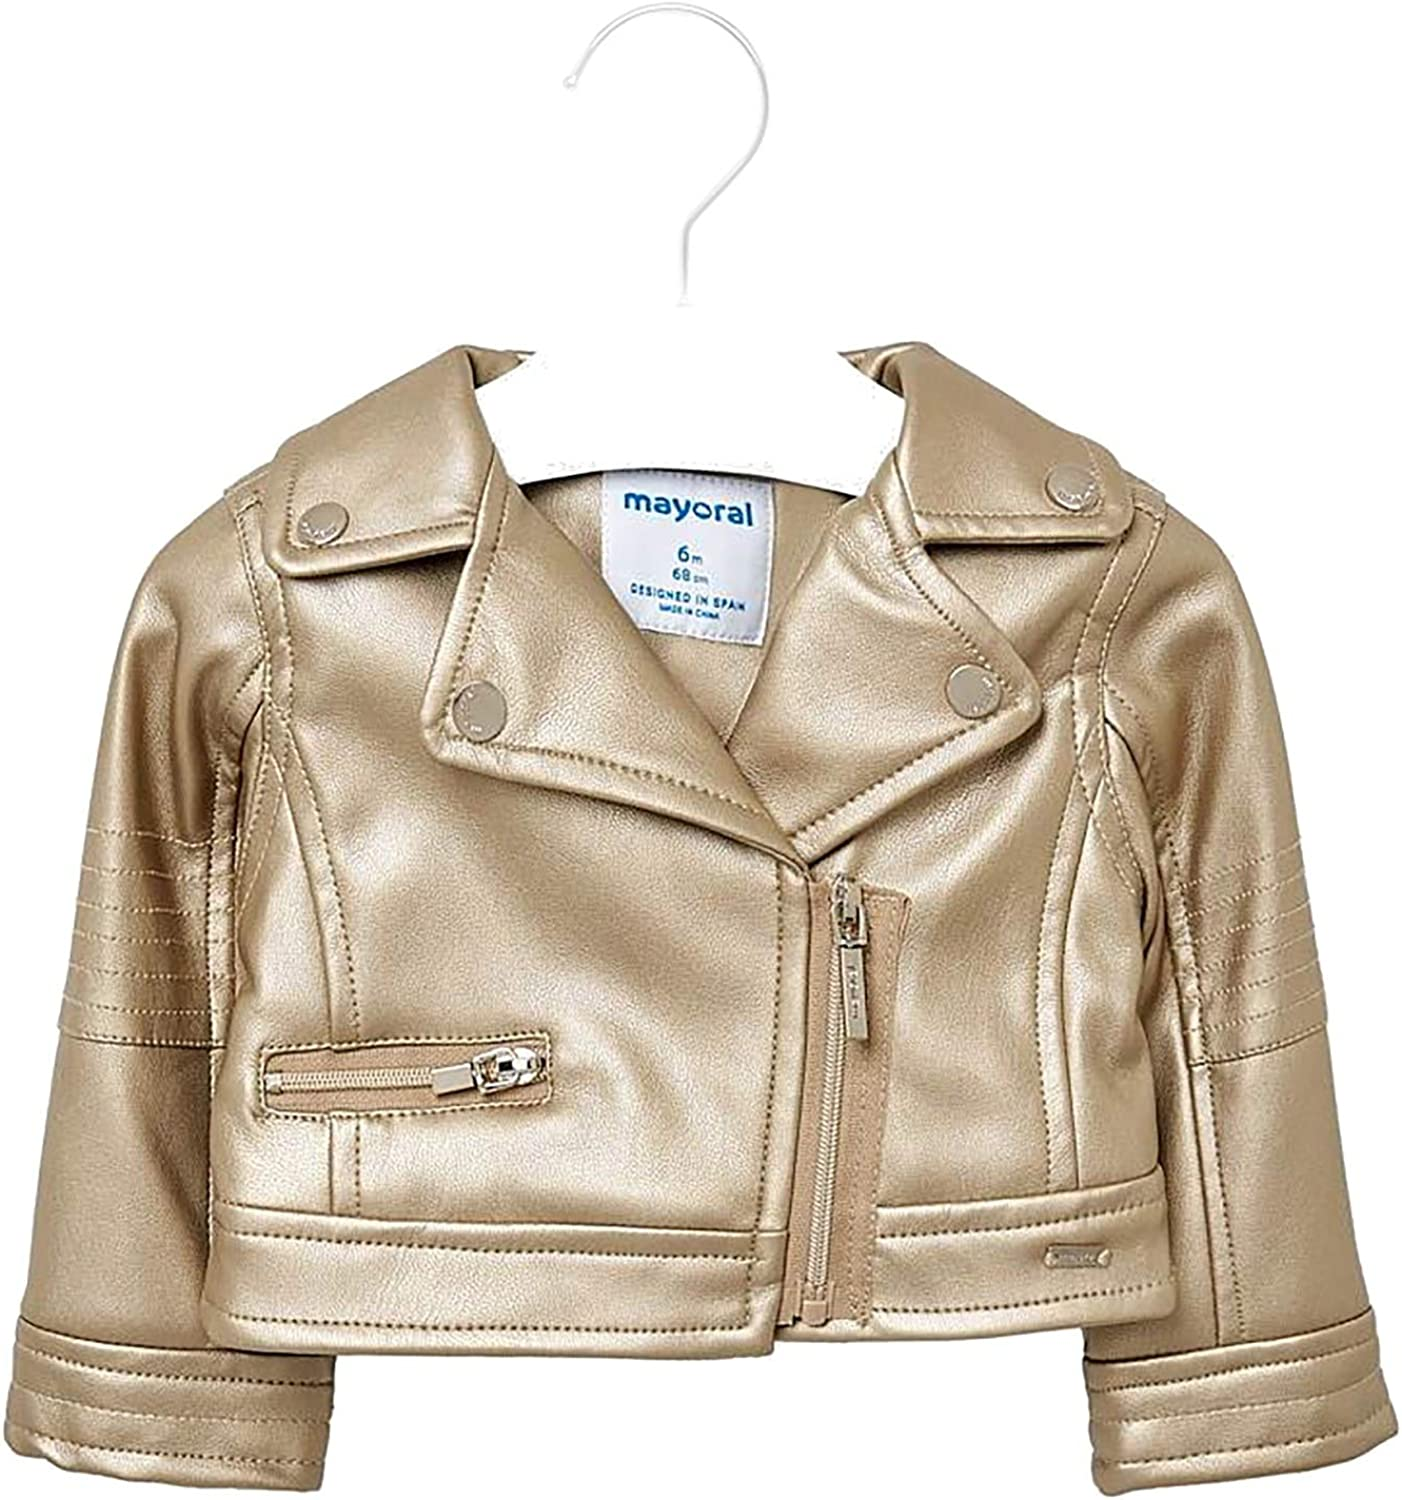 Mayoral 1417 Leather Jacket for Baby-Girls Golden